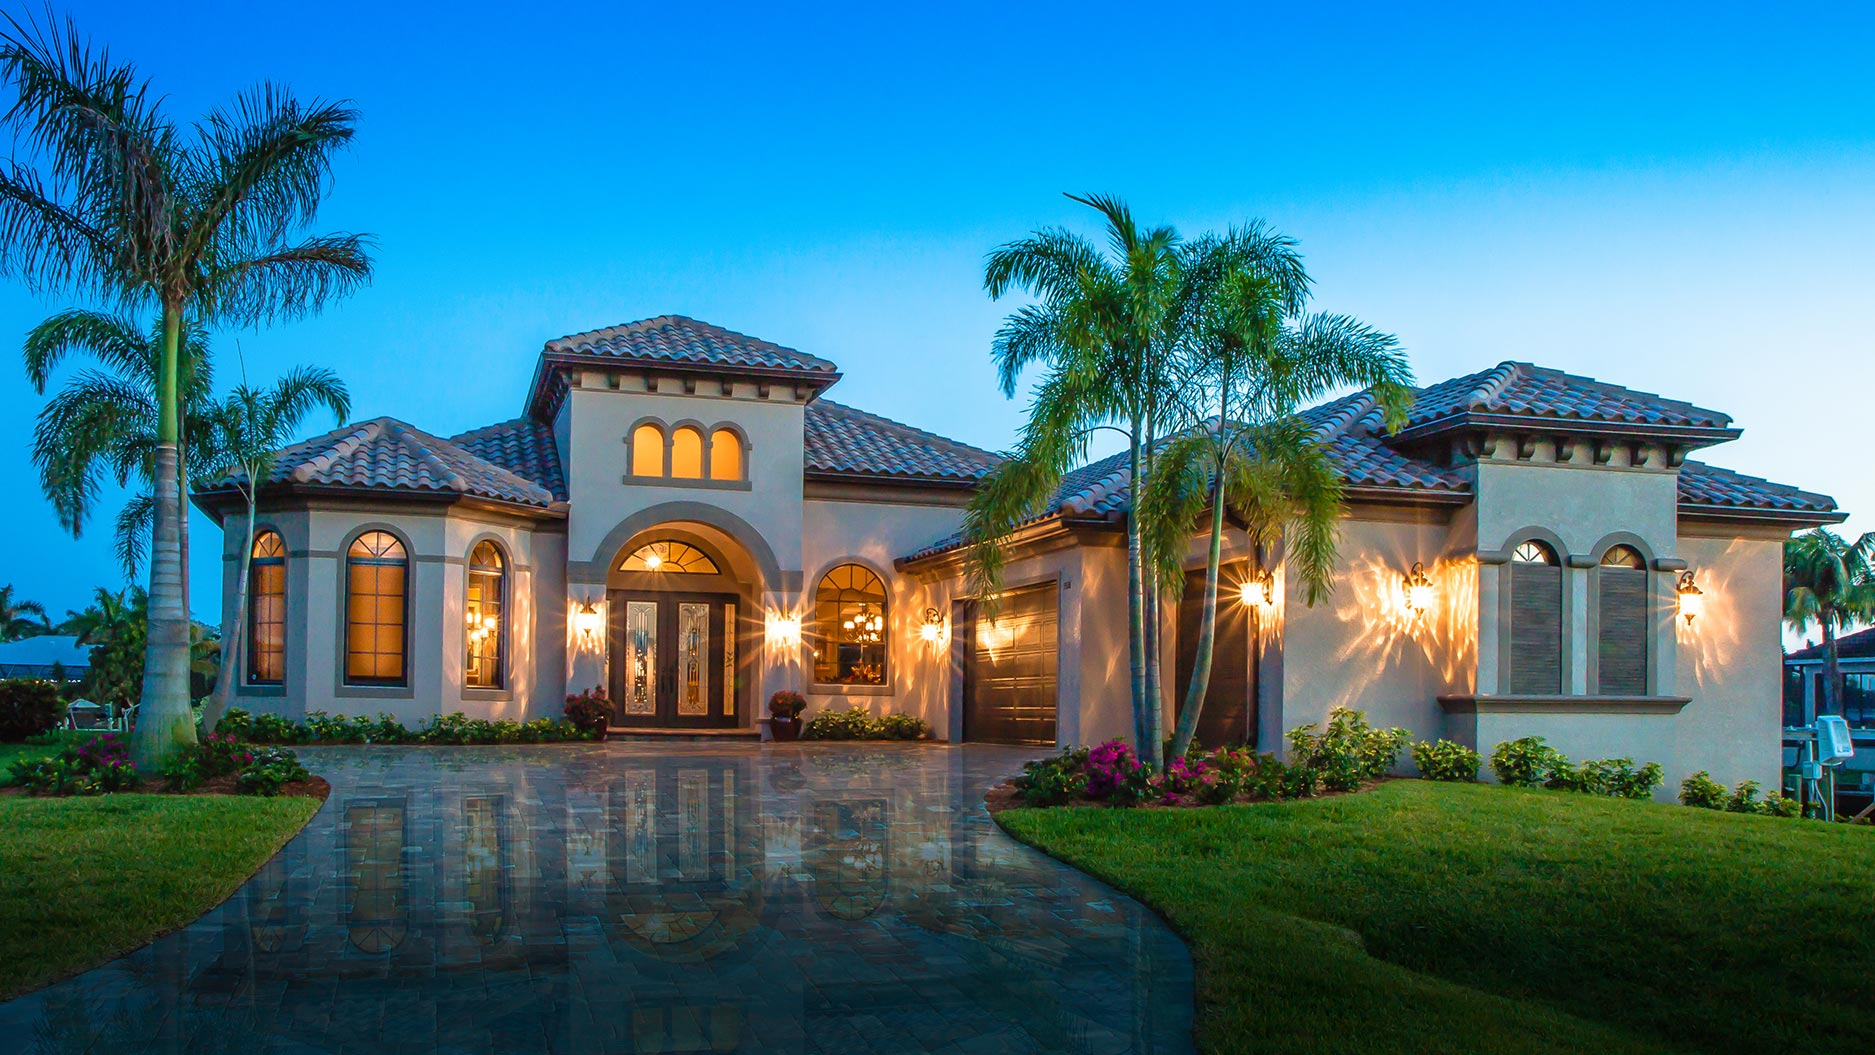 Home Inspections Seminole florida by Advanced Home Inspections